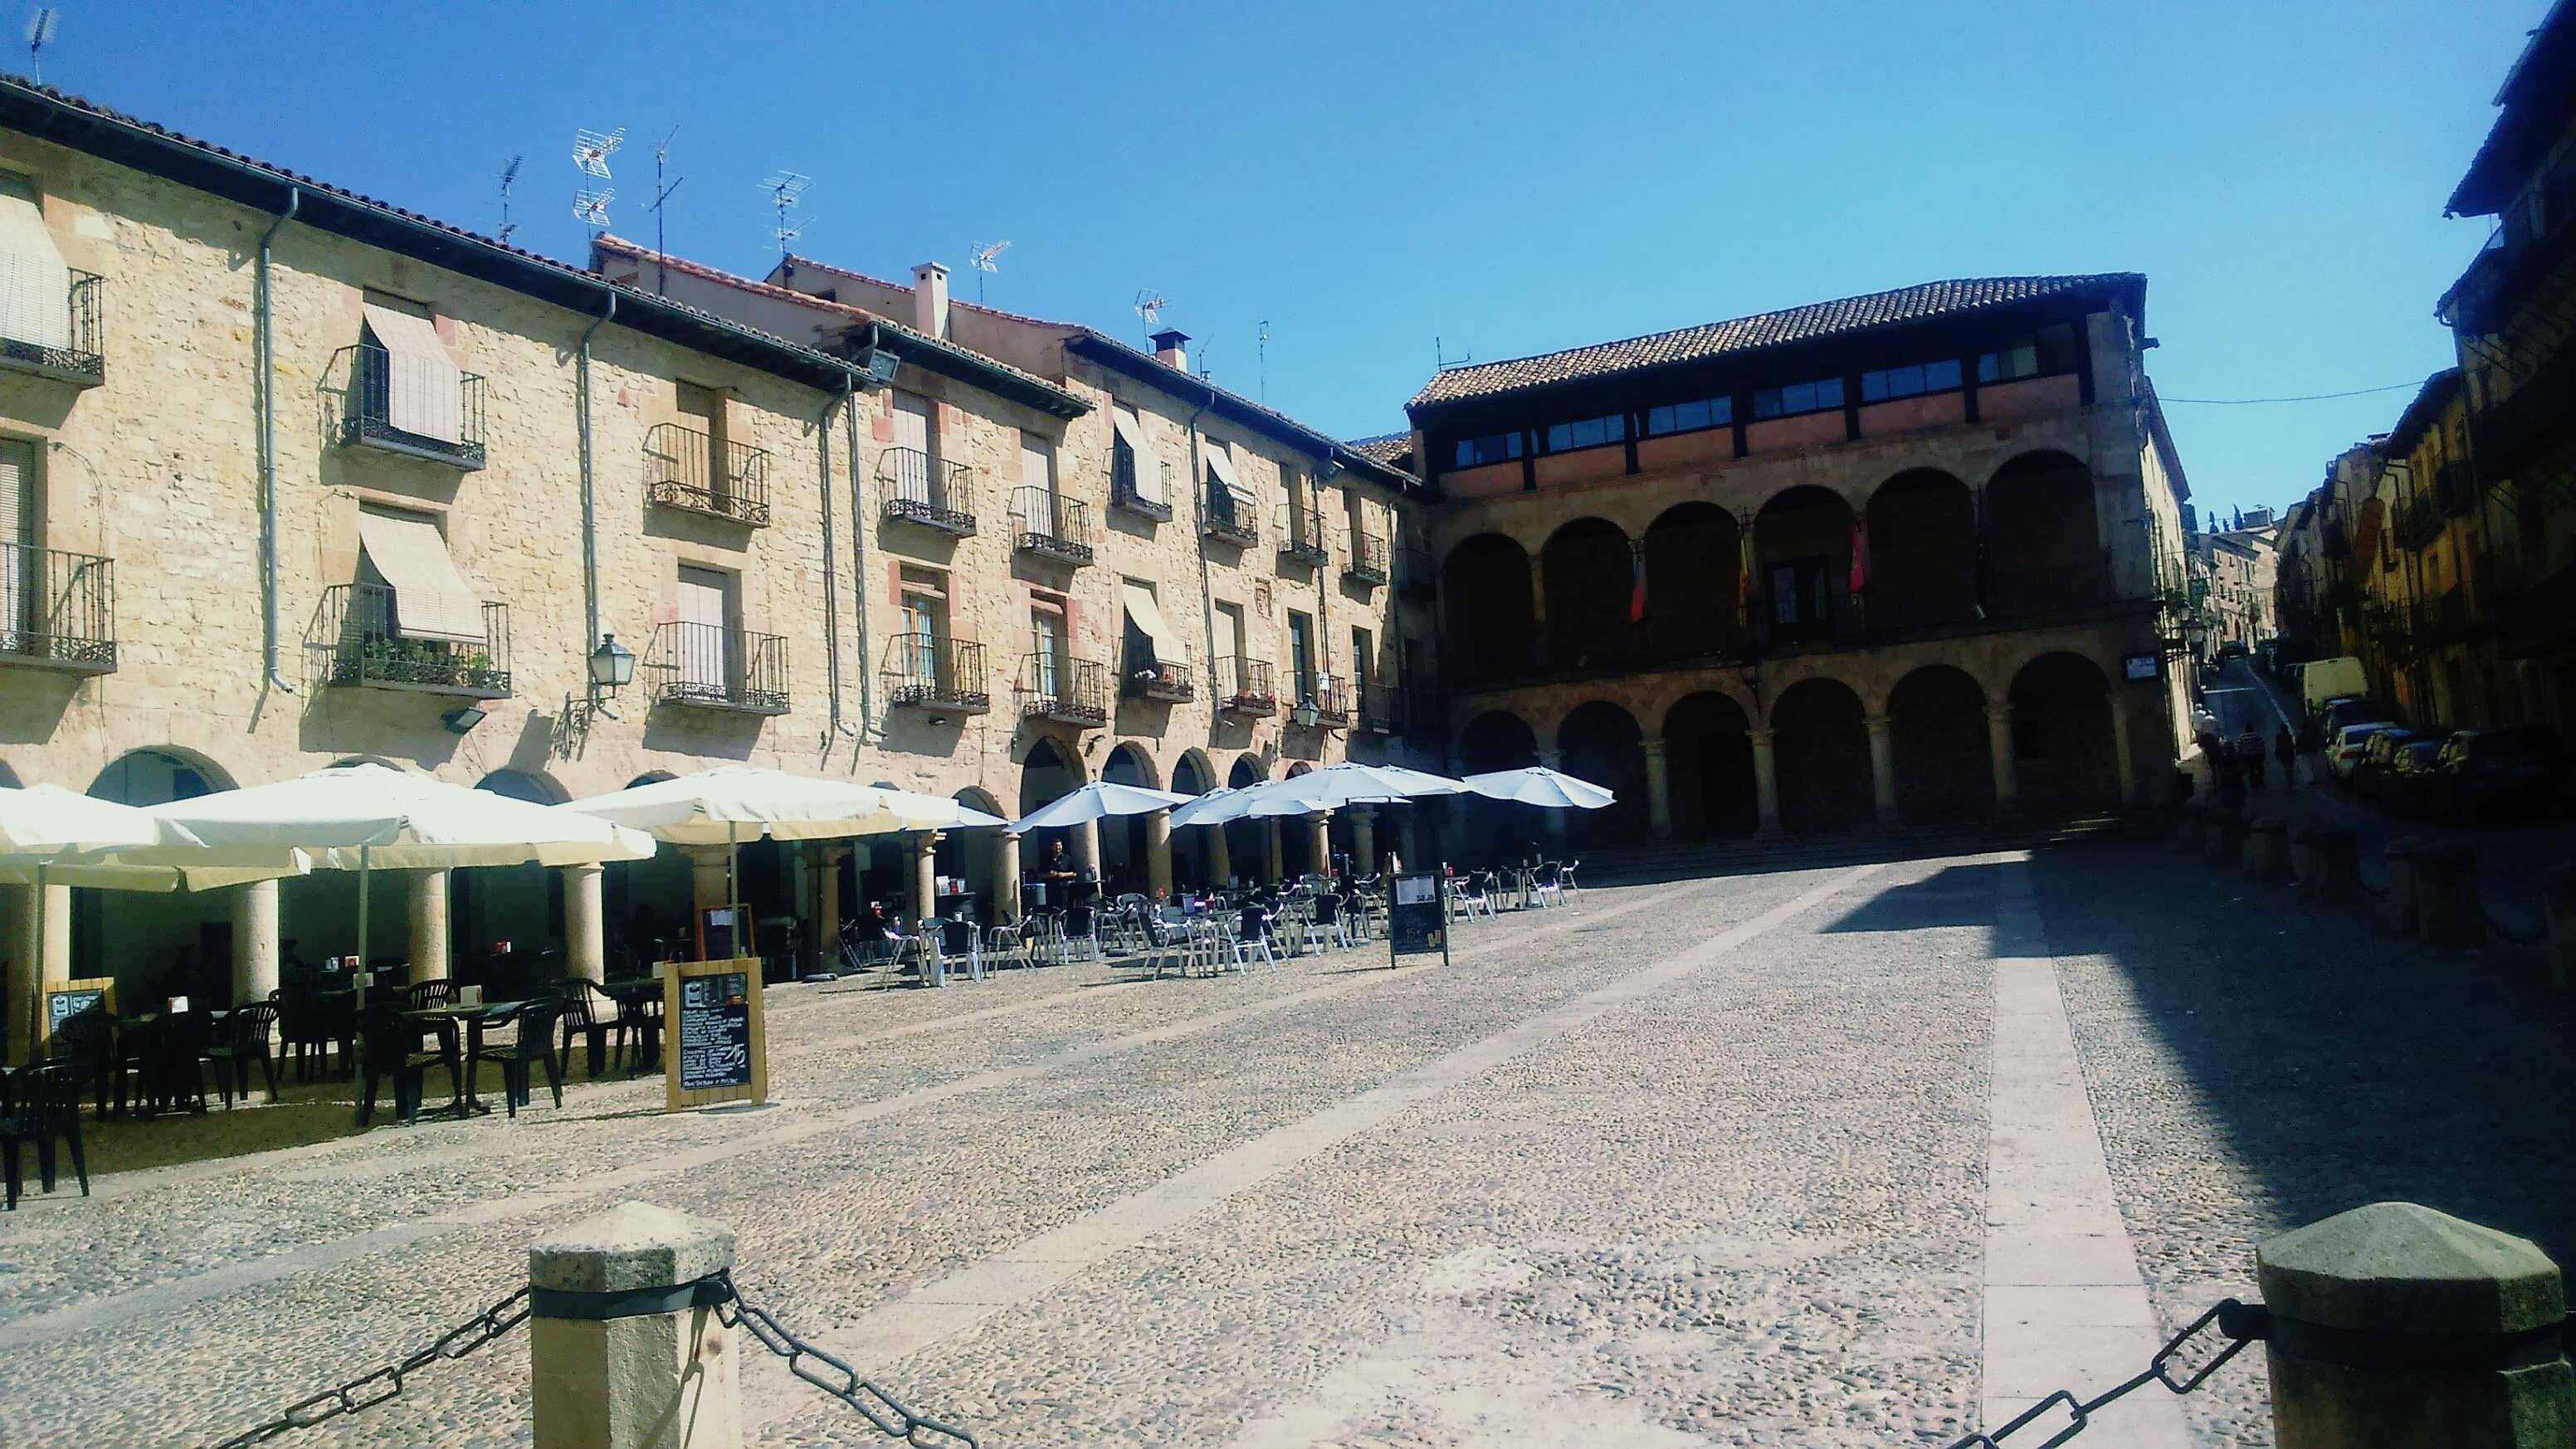 Pueblo en Plaza Mayor de Sigüenza